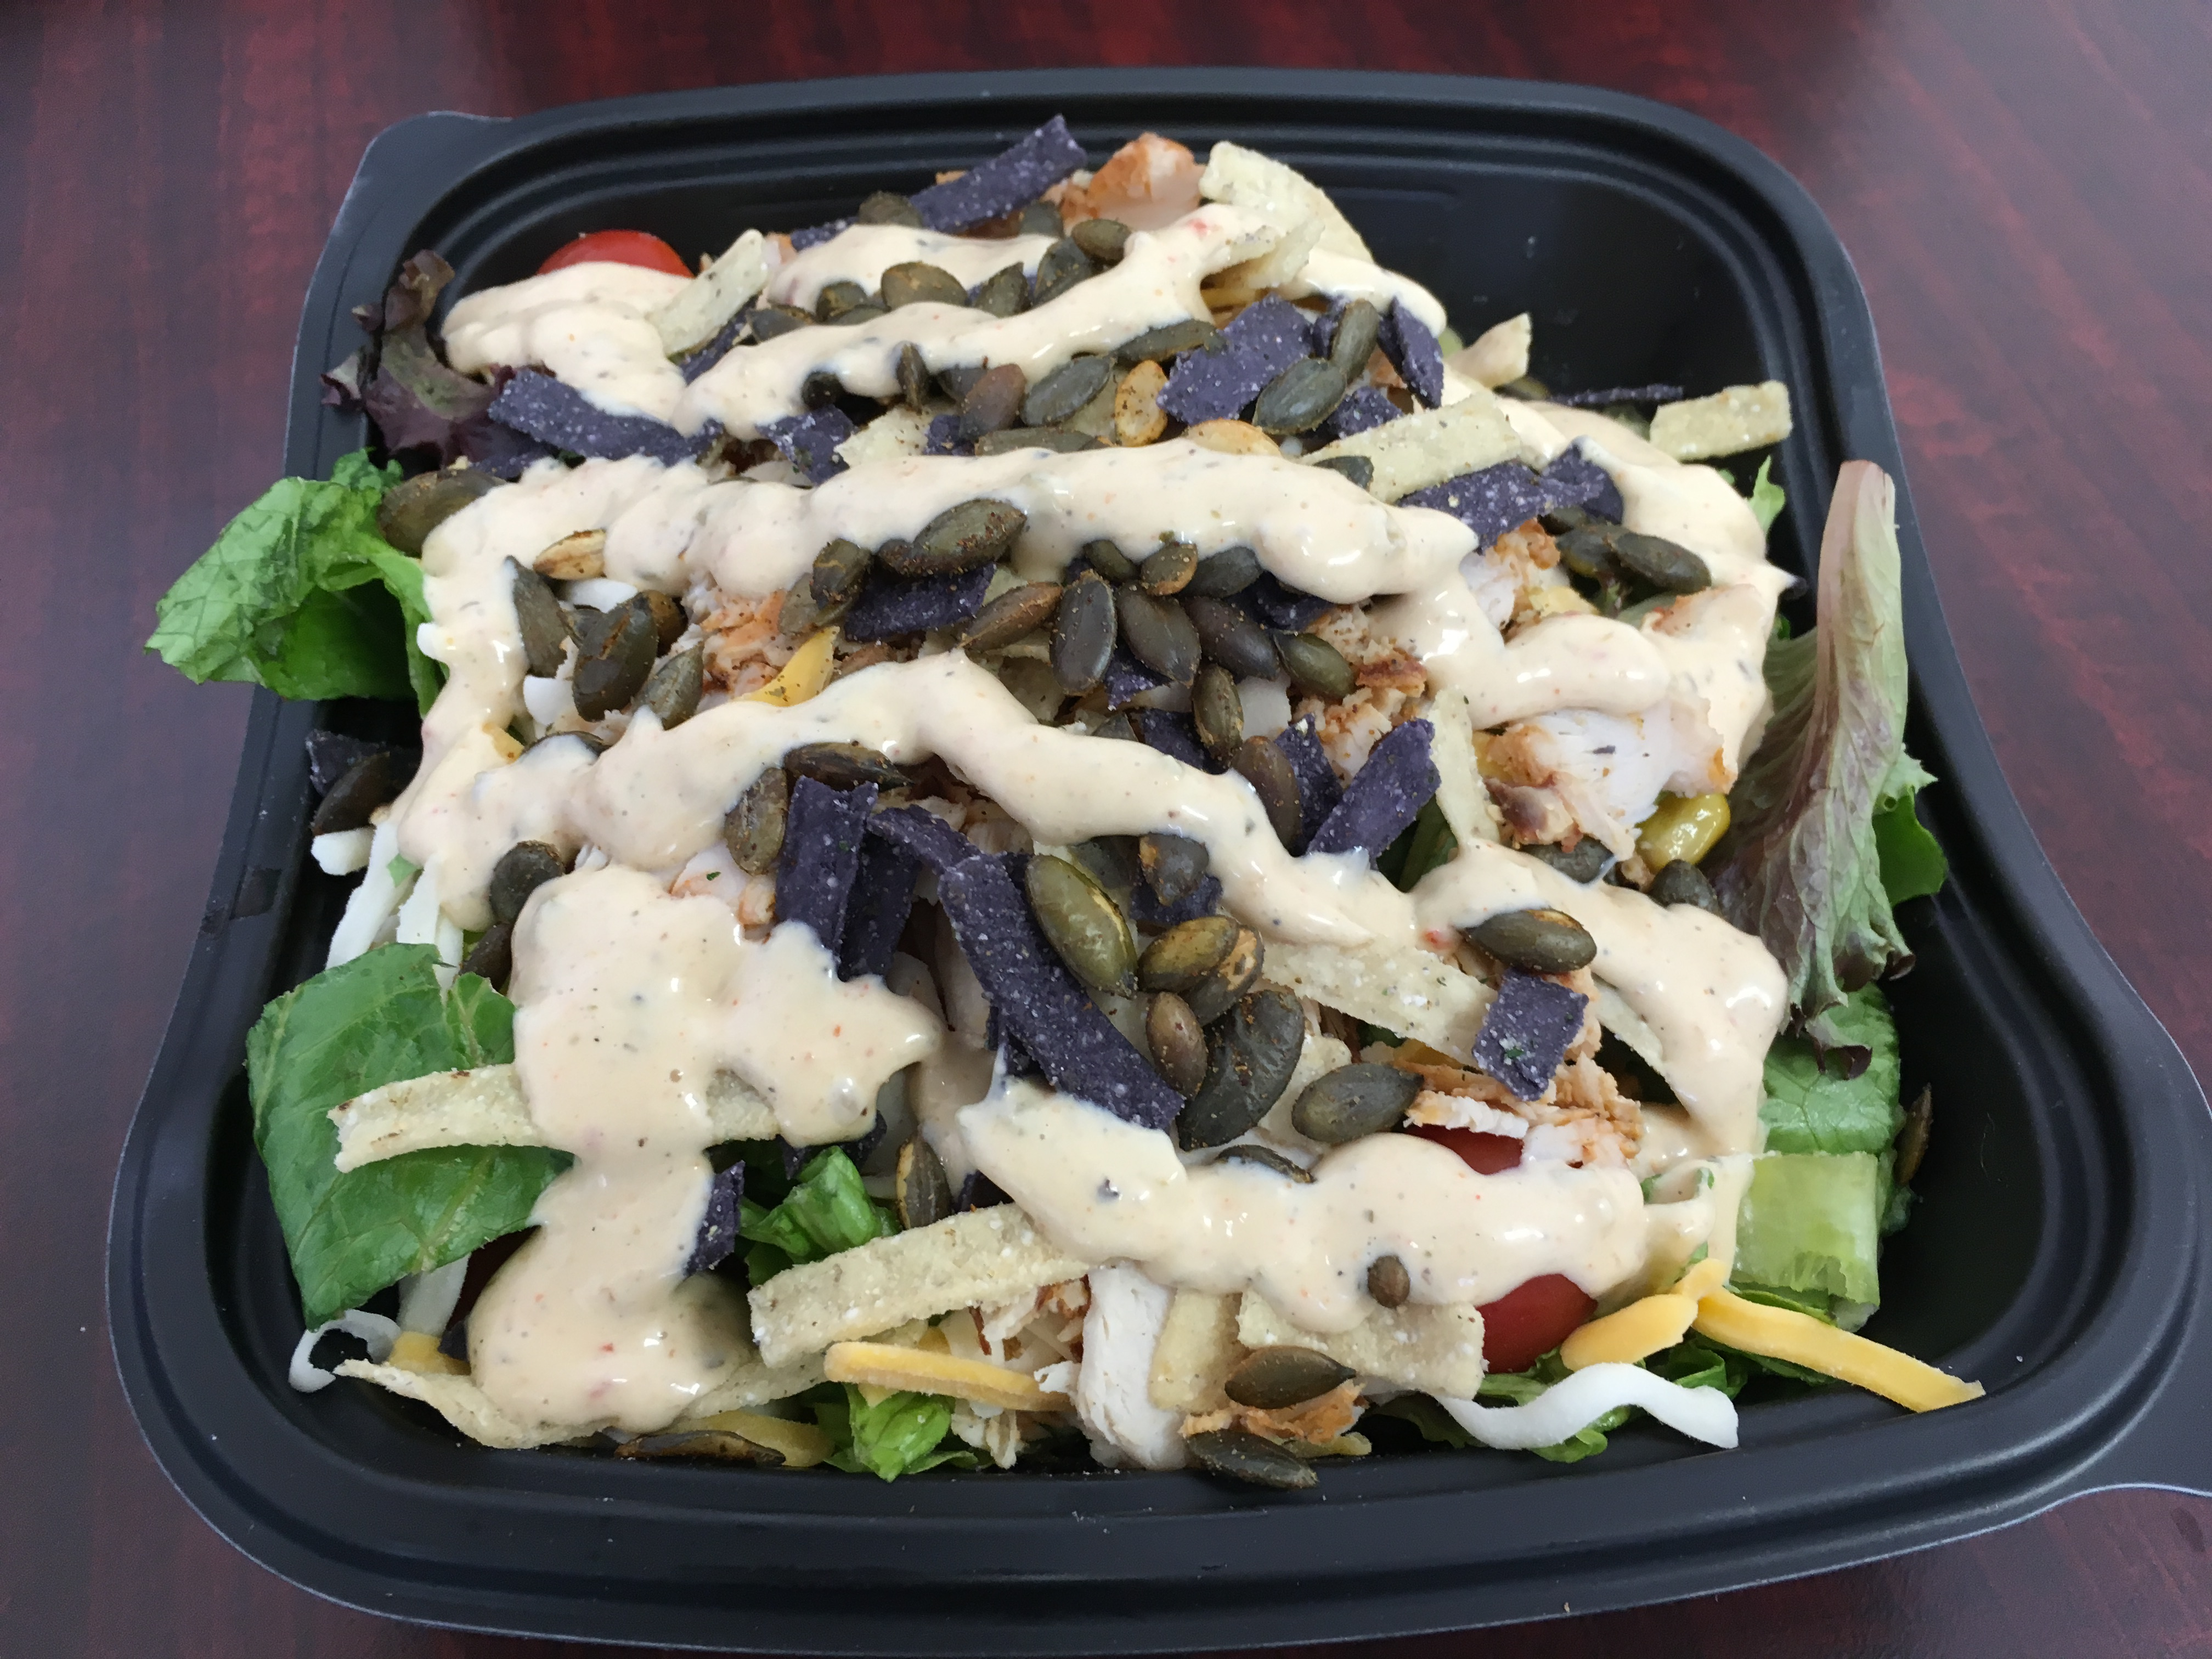 Chick Fil A Spicy Southwestern Salad [Review]Fast Food Geek